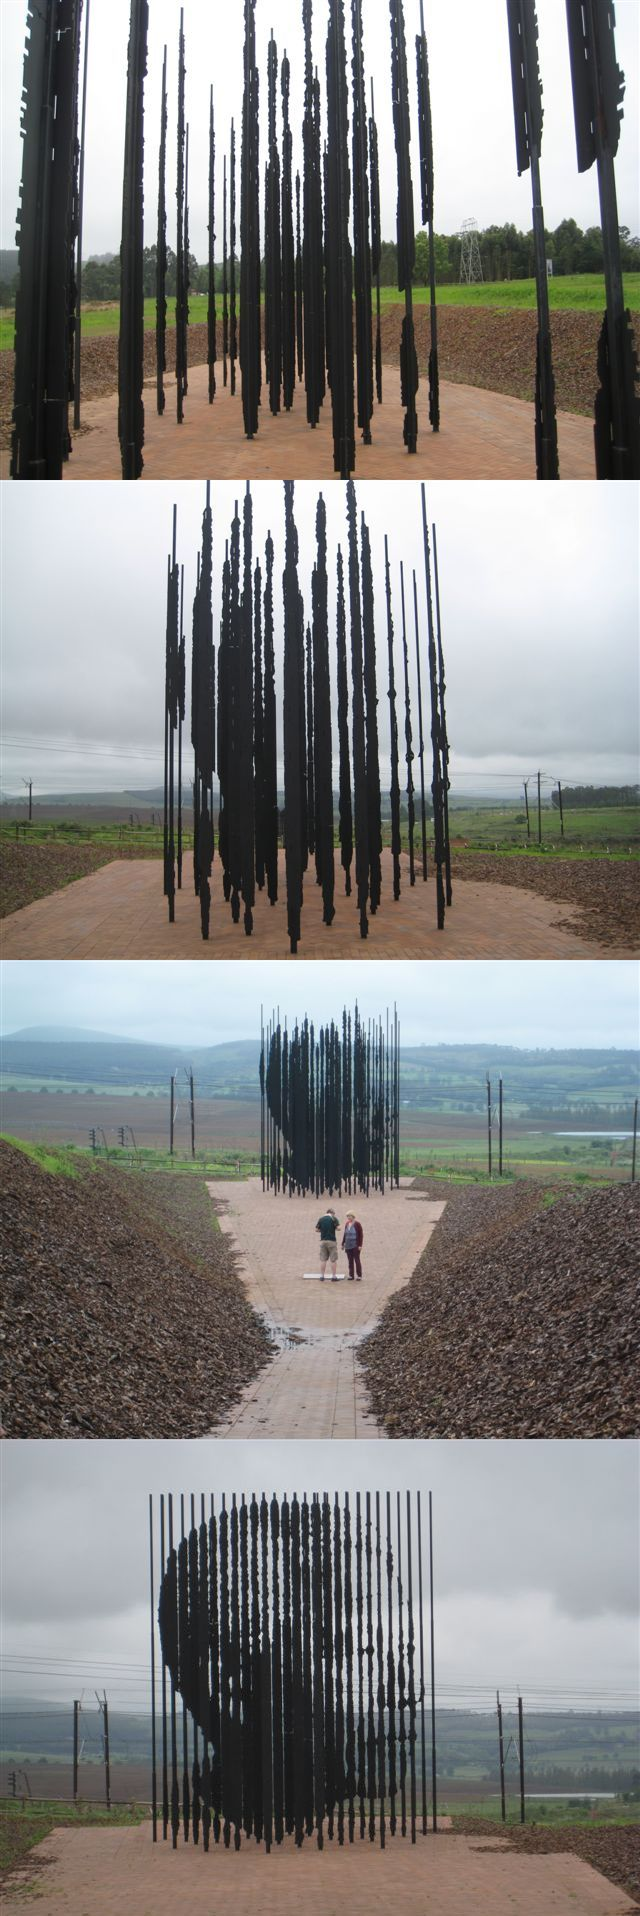 Nelson Mandela sculpture - at the place where he was captured - Kwazulu Natal - South Africa